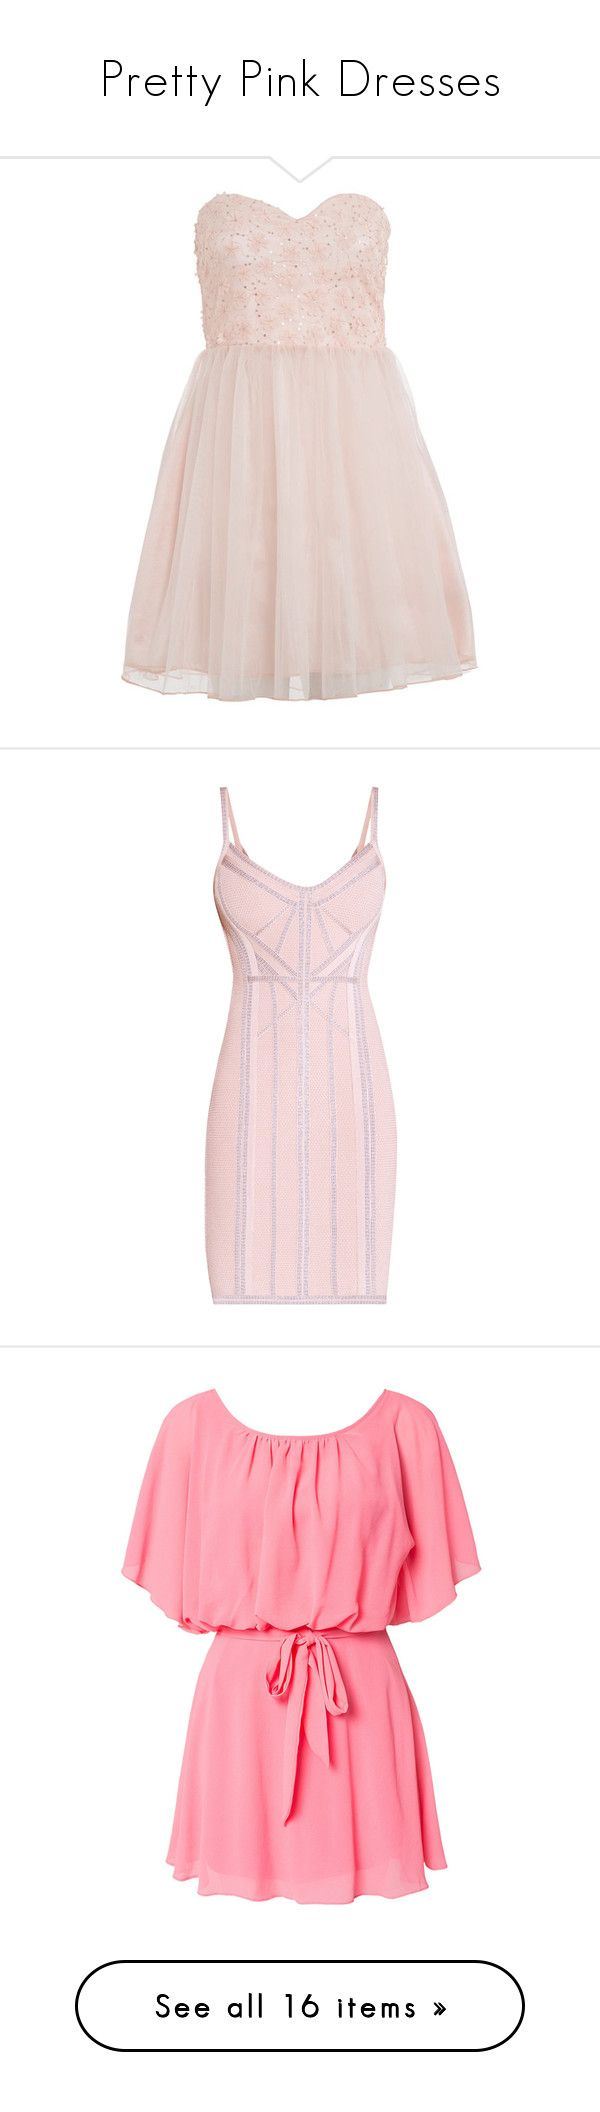 """""""Pretty Pink Dresses"""" by whims-and-craze ❤ liked on Polyvore featuring dresses, vestidos, robe, short dresses, sequin mini dress, floral prom dresses, sequin party dresses, short party dresses, pink party dresses and pink bandage dress"""